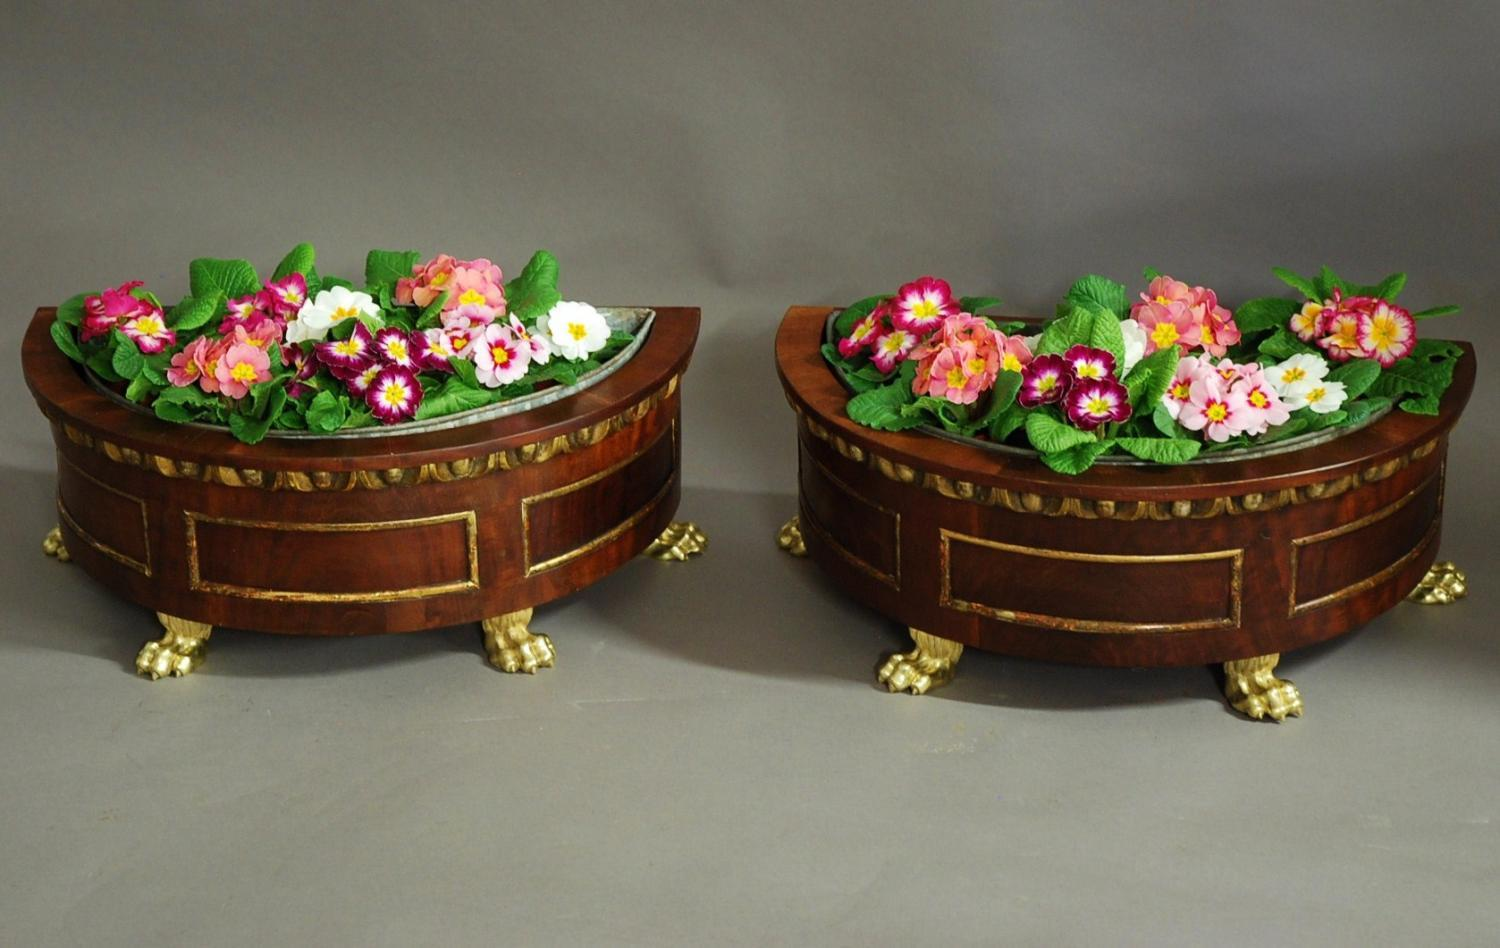 Decorative pair of 19thc mahogany jardinieres